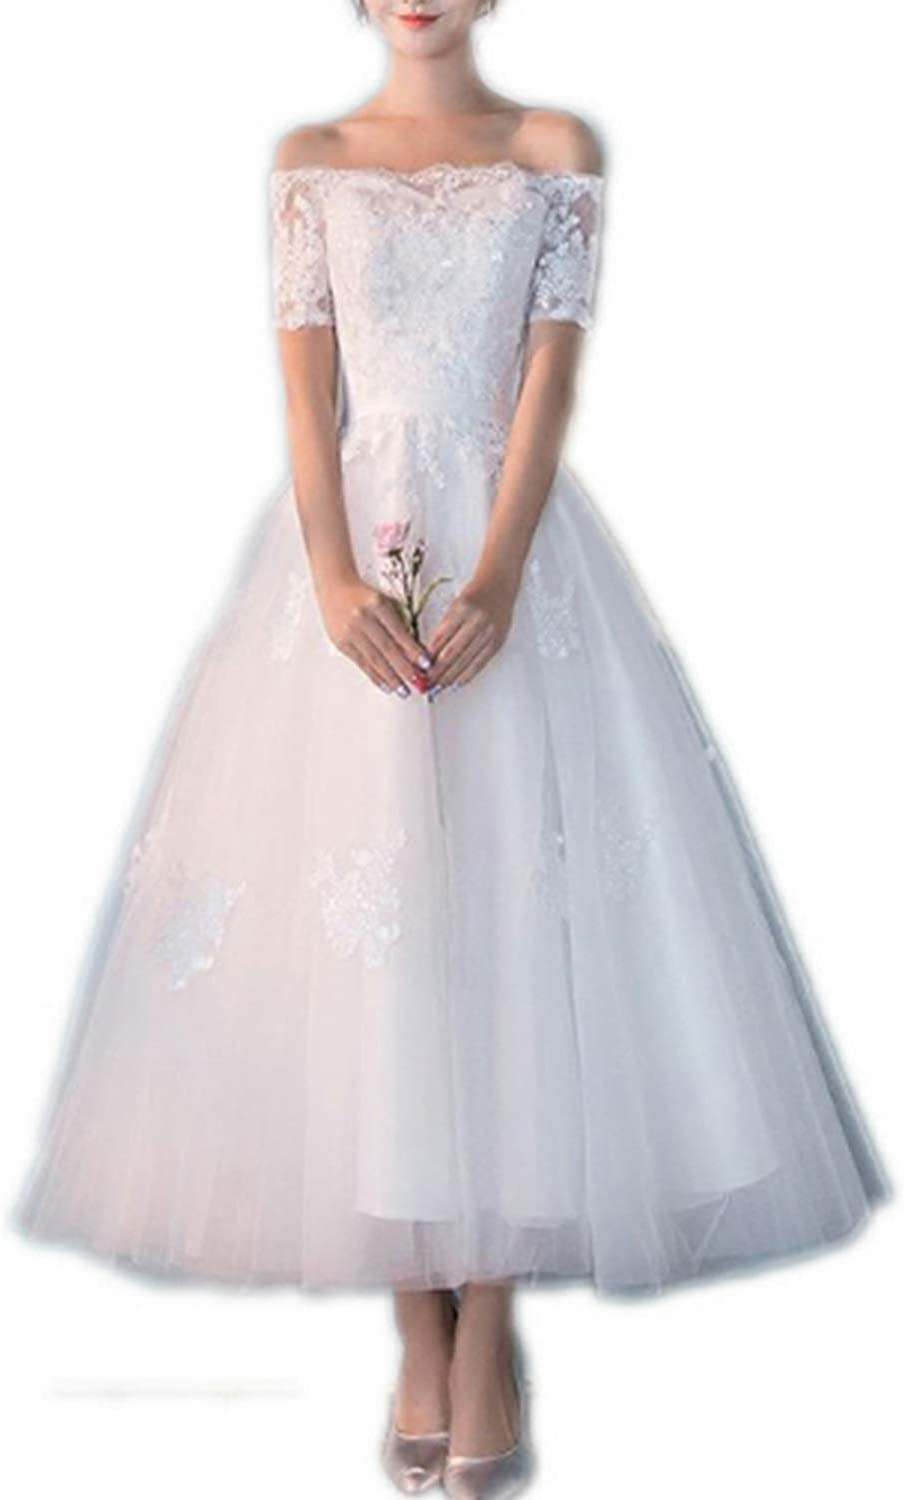 Bridal Wedding Bud Silk Gauze Applique Elegant Word Shoulder Wedding Dress (Size   M)